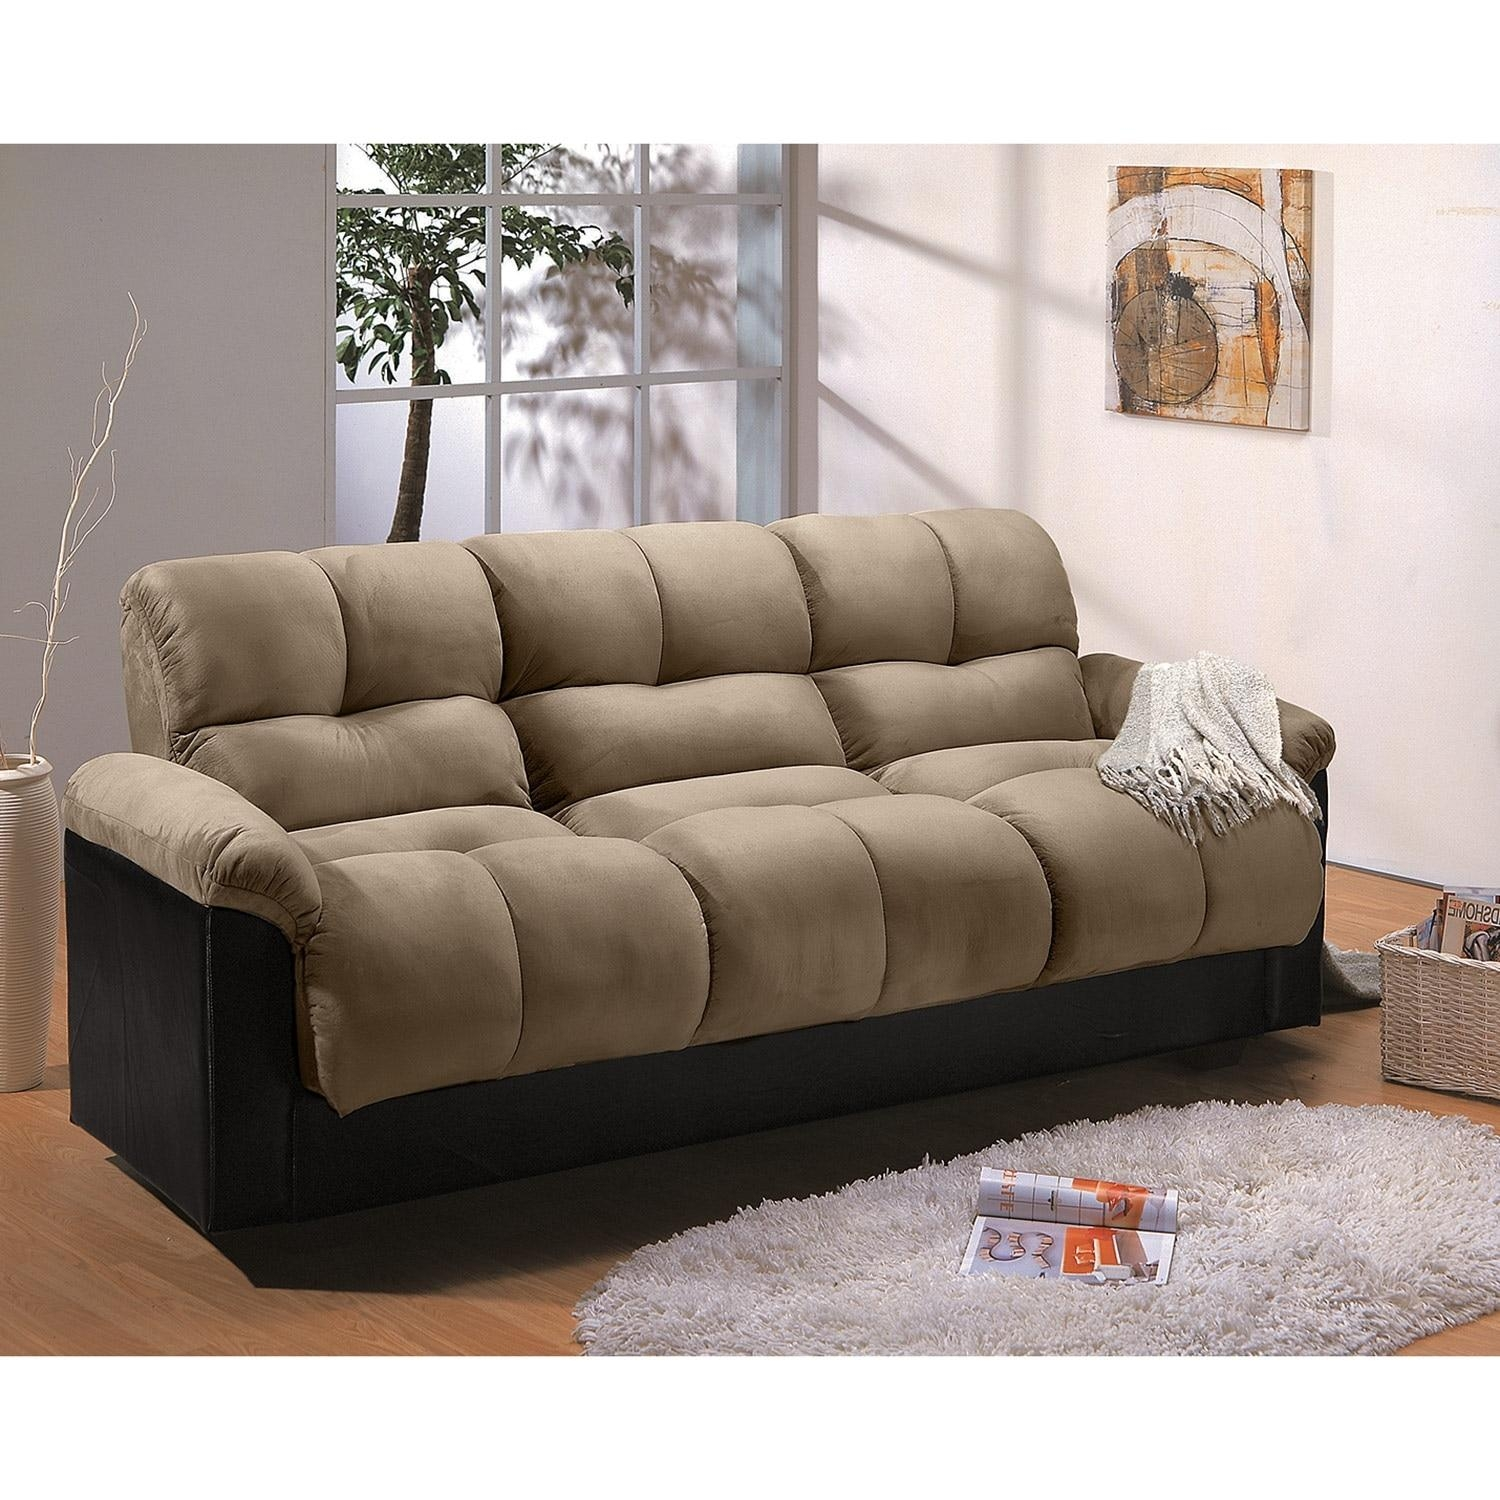 Ara Futon Sofa Bed With Storage – Hazelnut | American Signature With Regard To Fulton Sofa Beds (View 11 of 21)